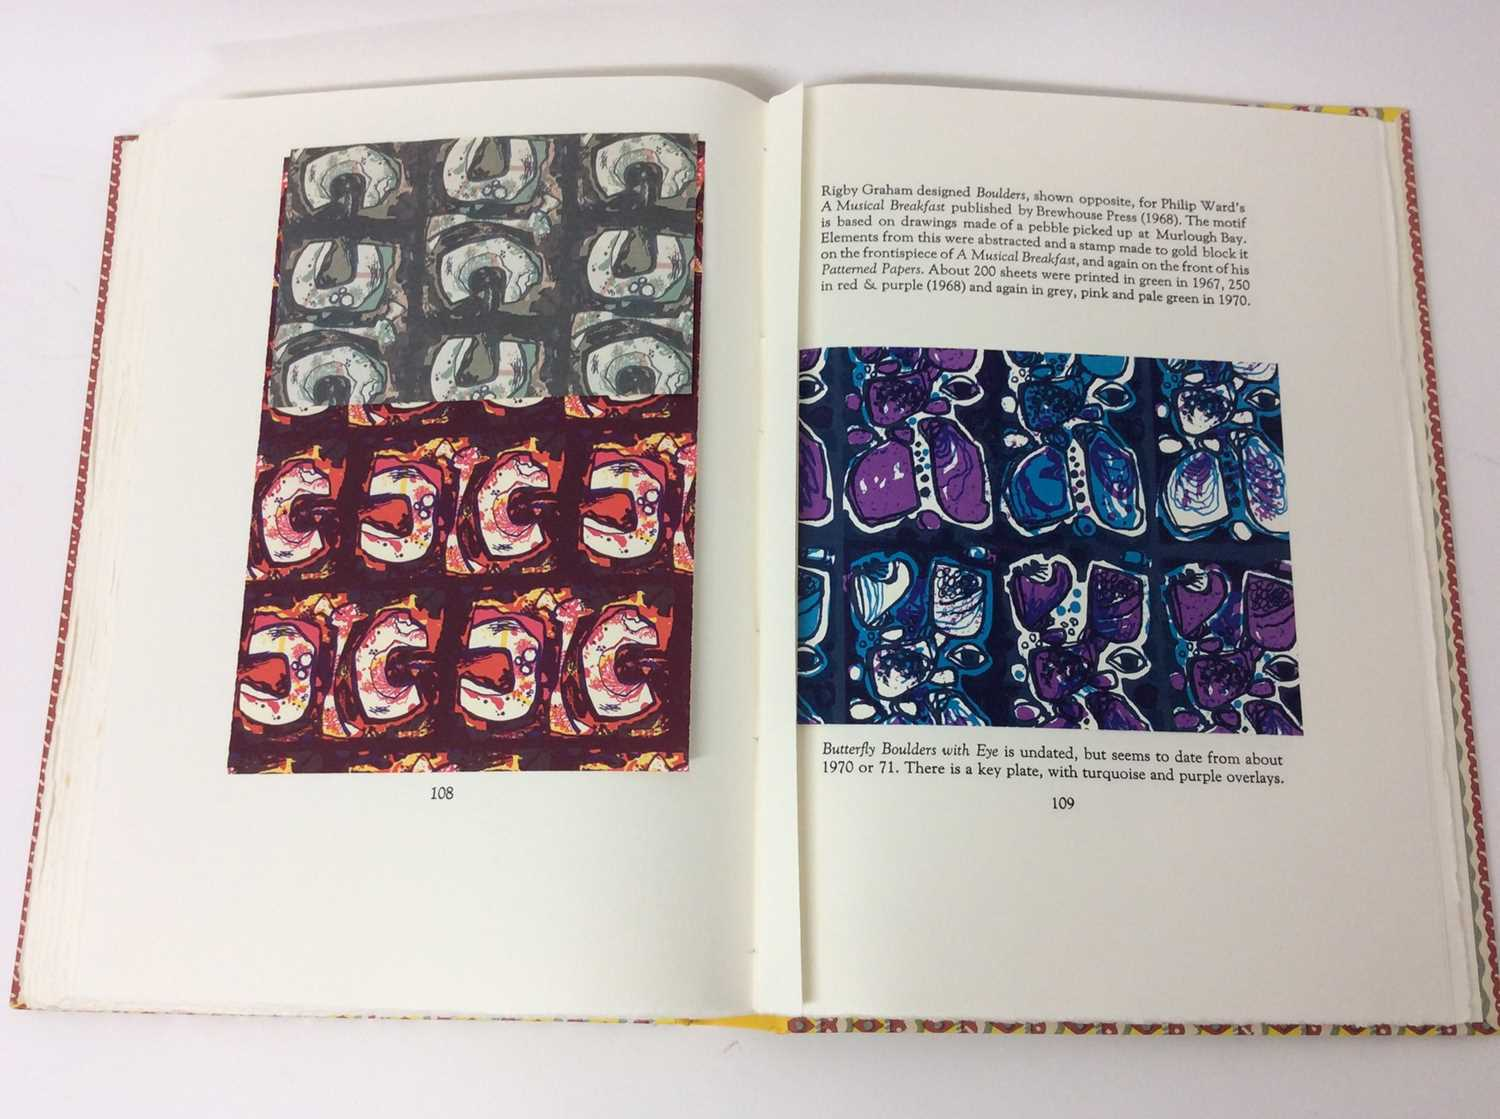 In Praise of Patterned Papers, Incline Press, 200/300 - Image 10 of 12